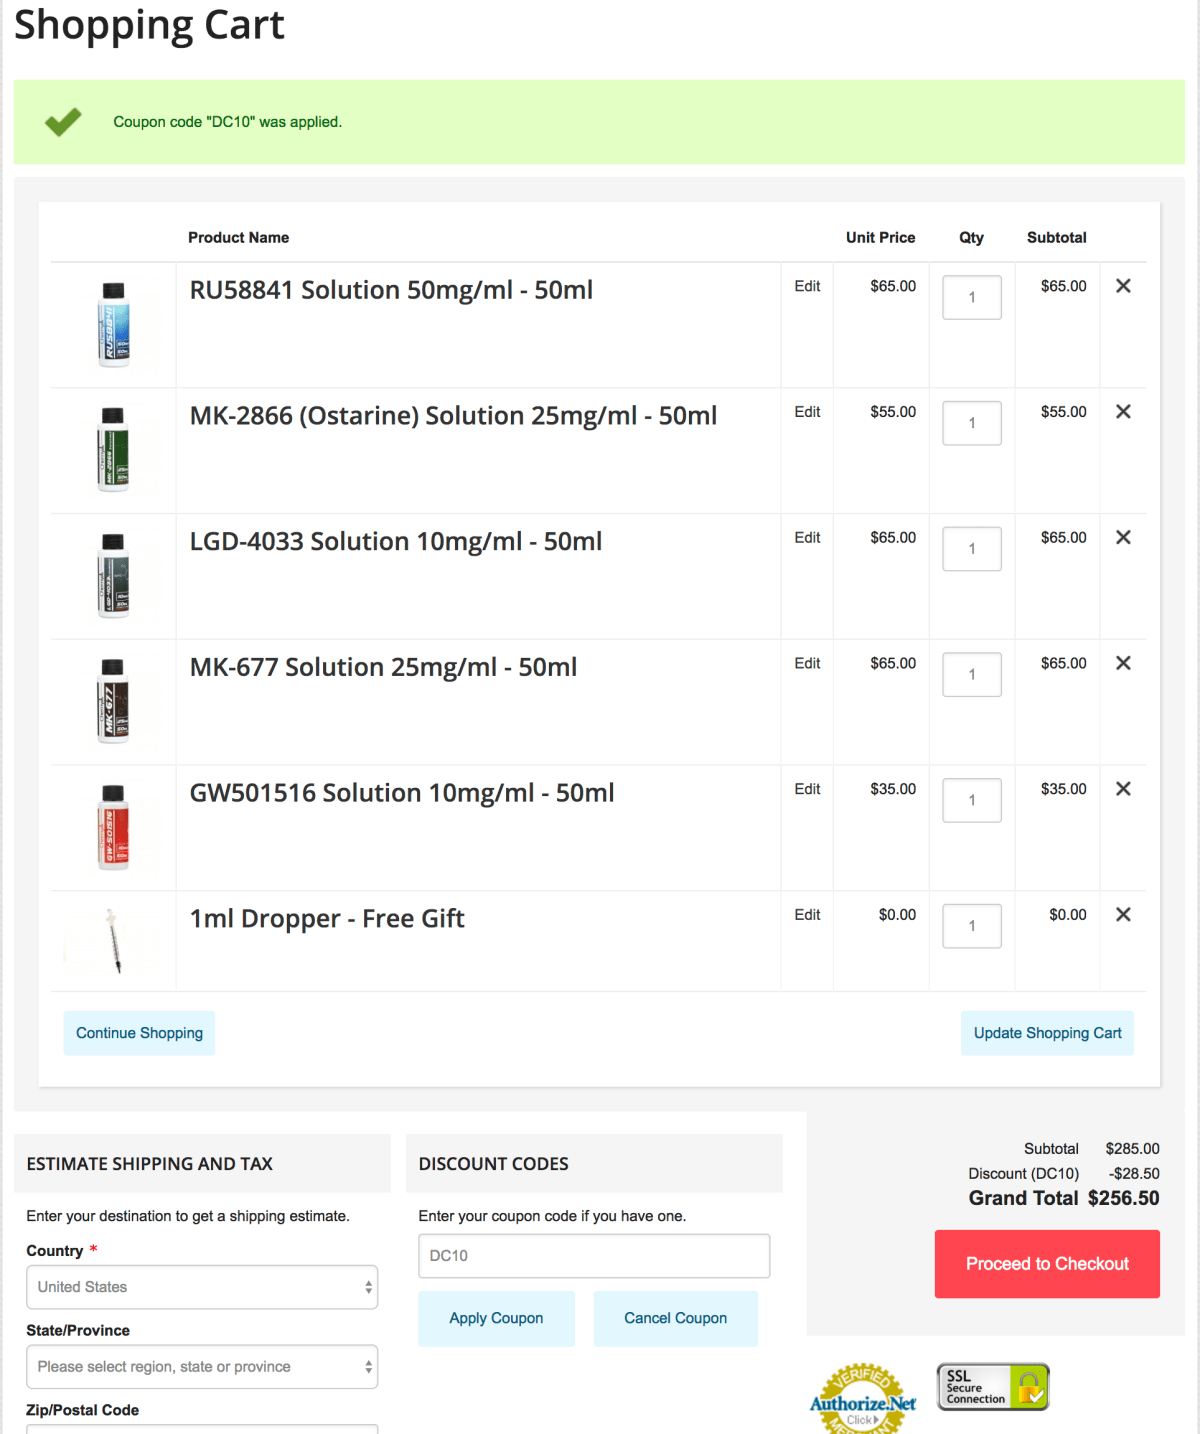 Chemyo checkout menu with 10 percent off coupon code DC10 applied